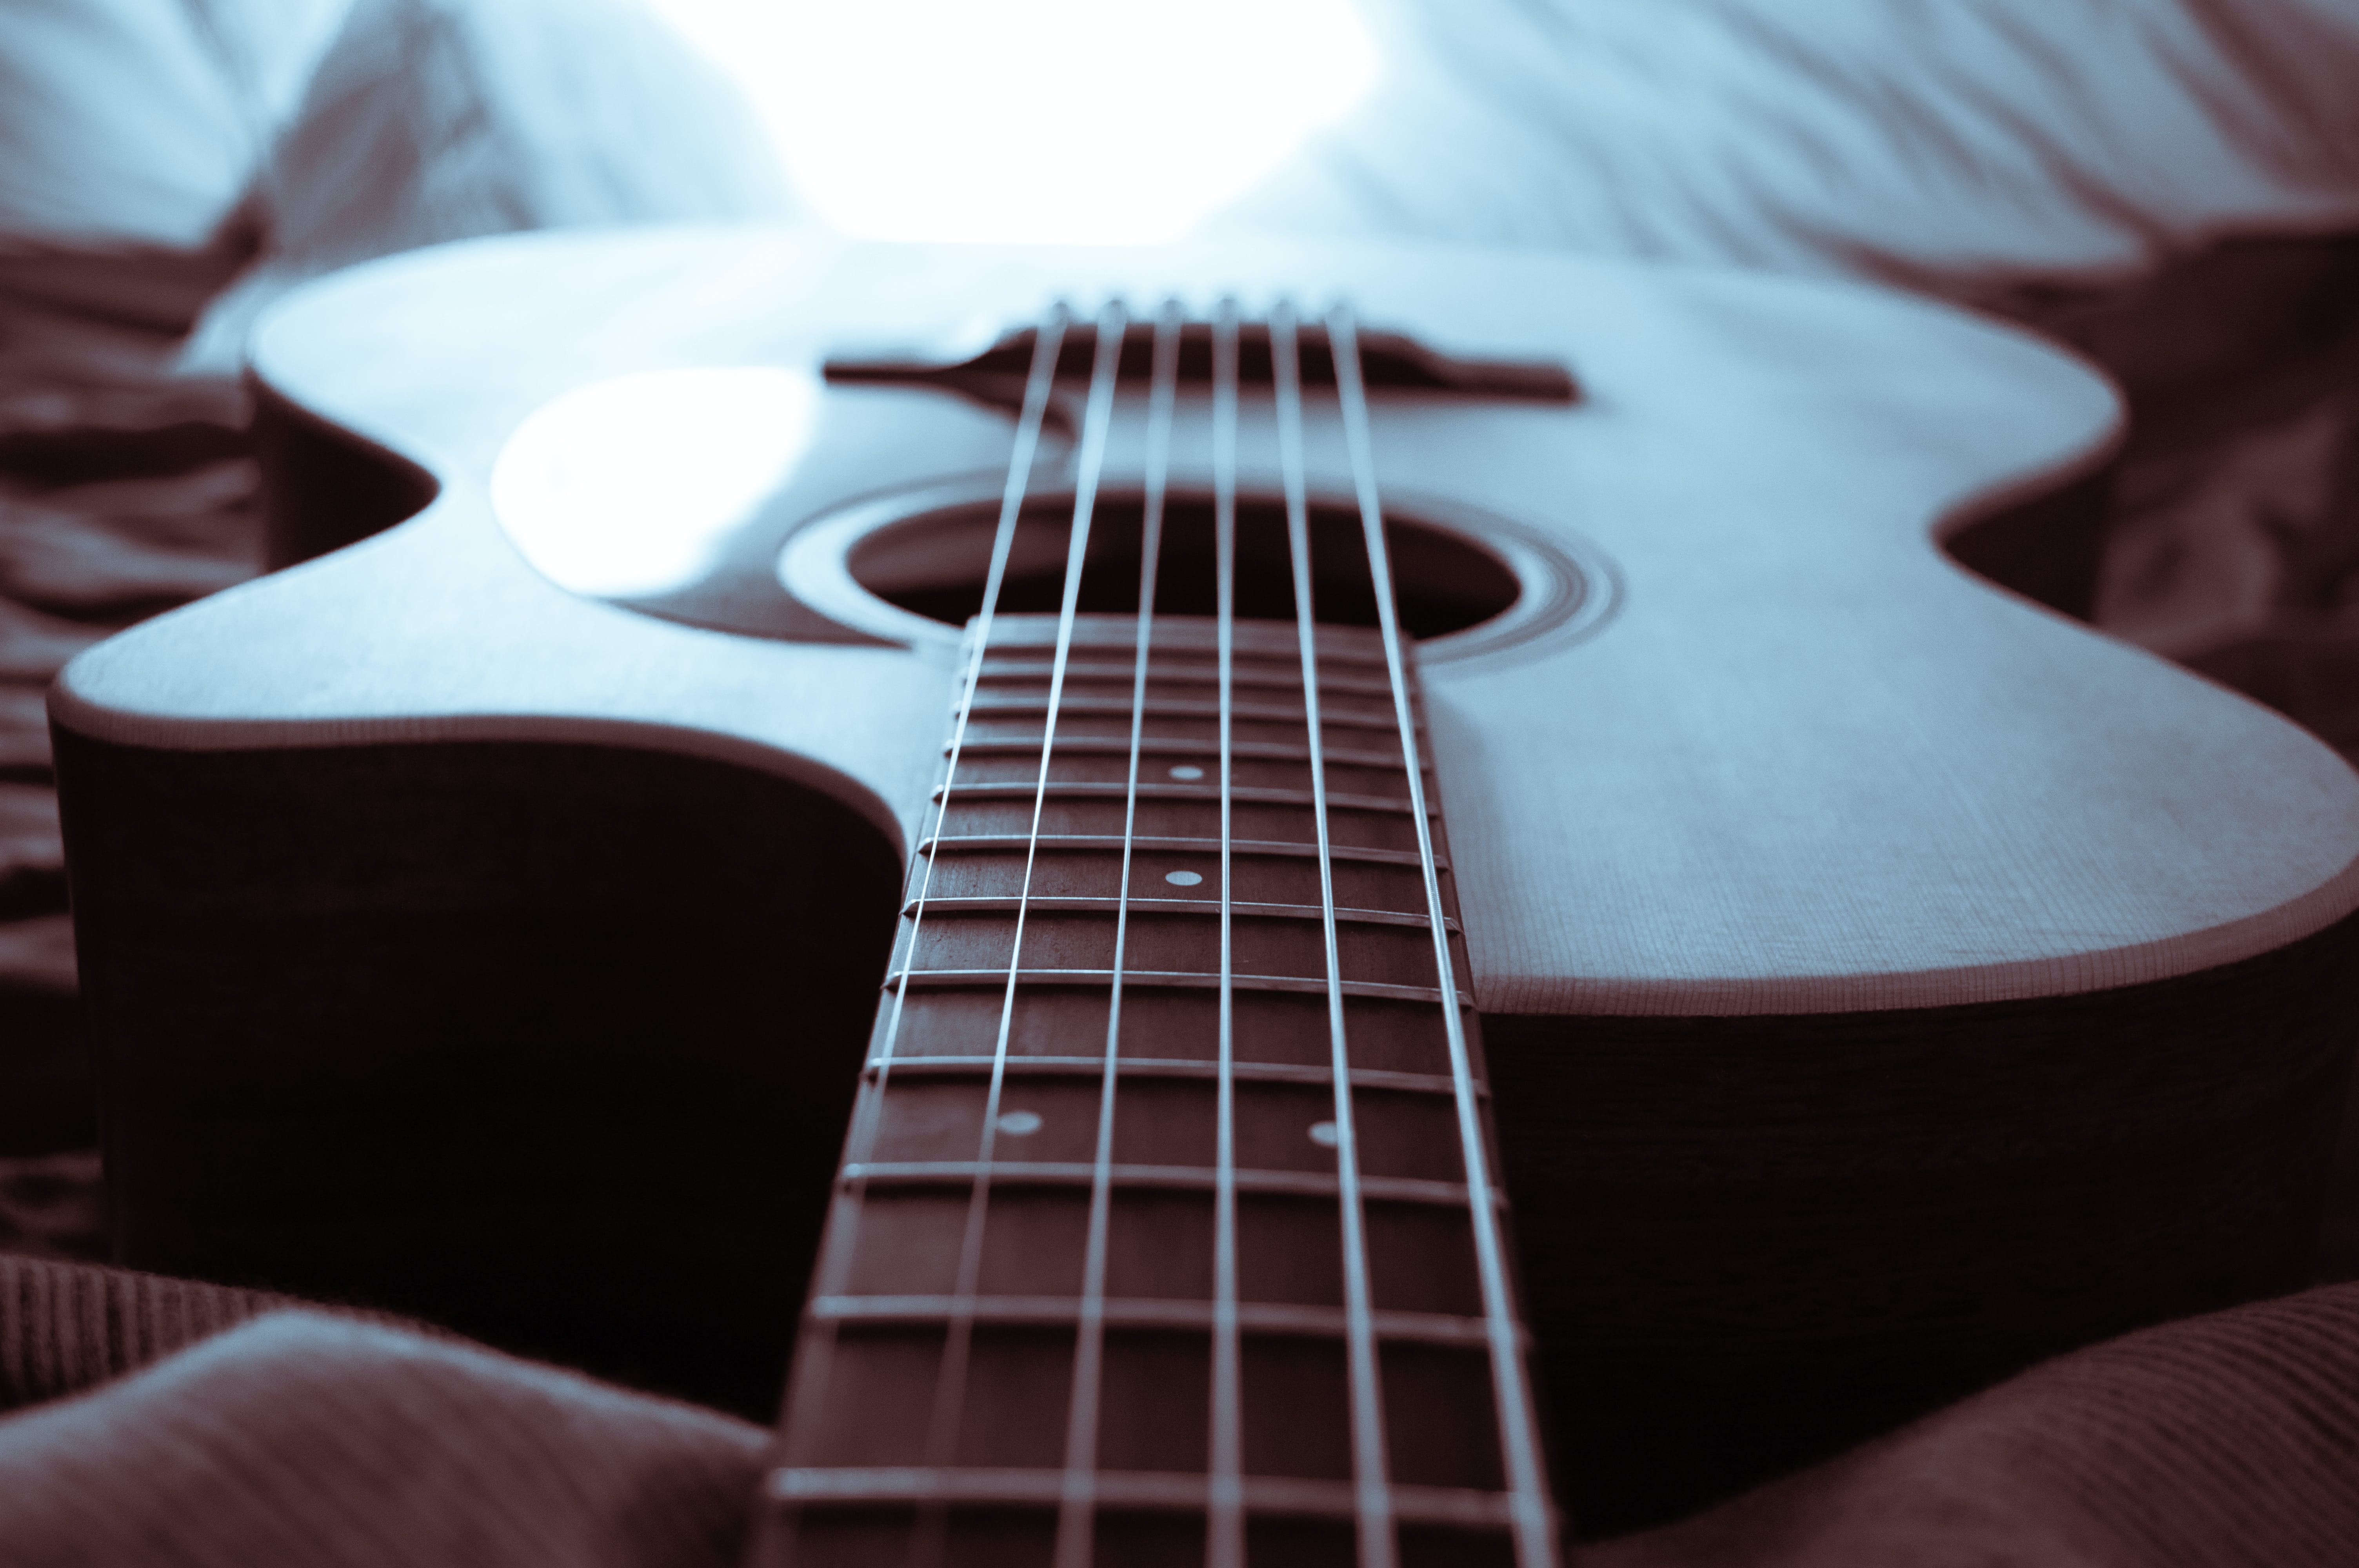 Free stock photo of acoustic, acoustic guitar, blue, guitar